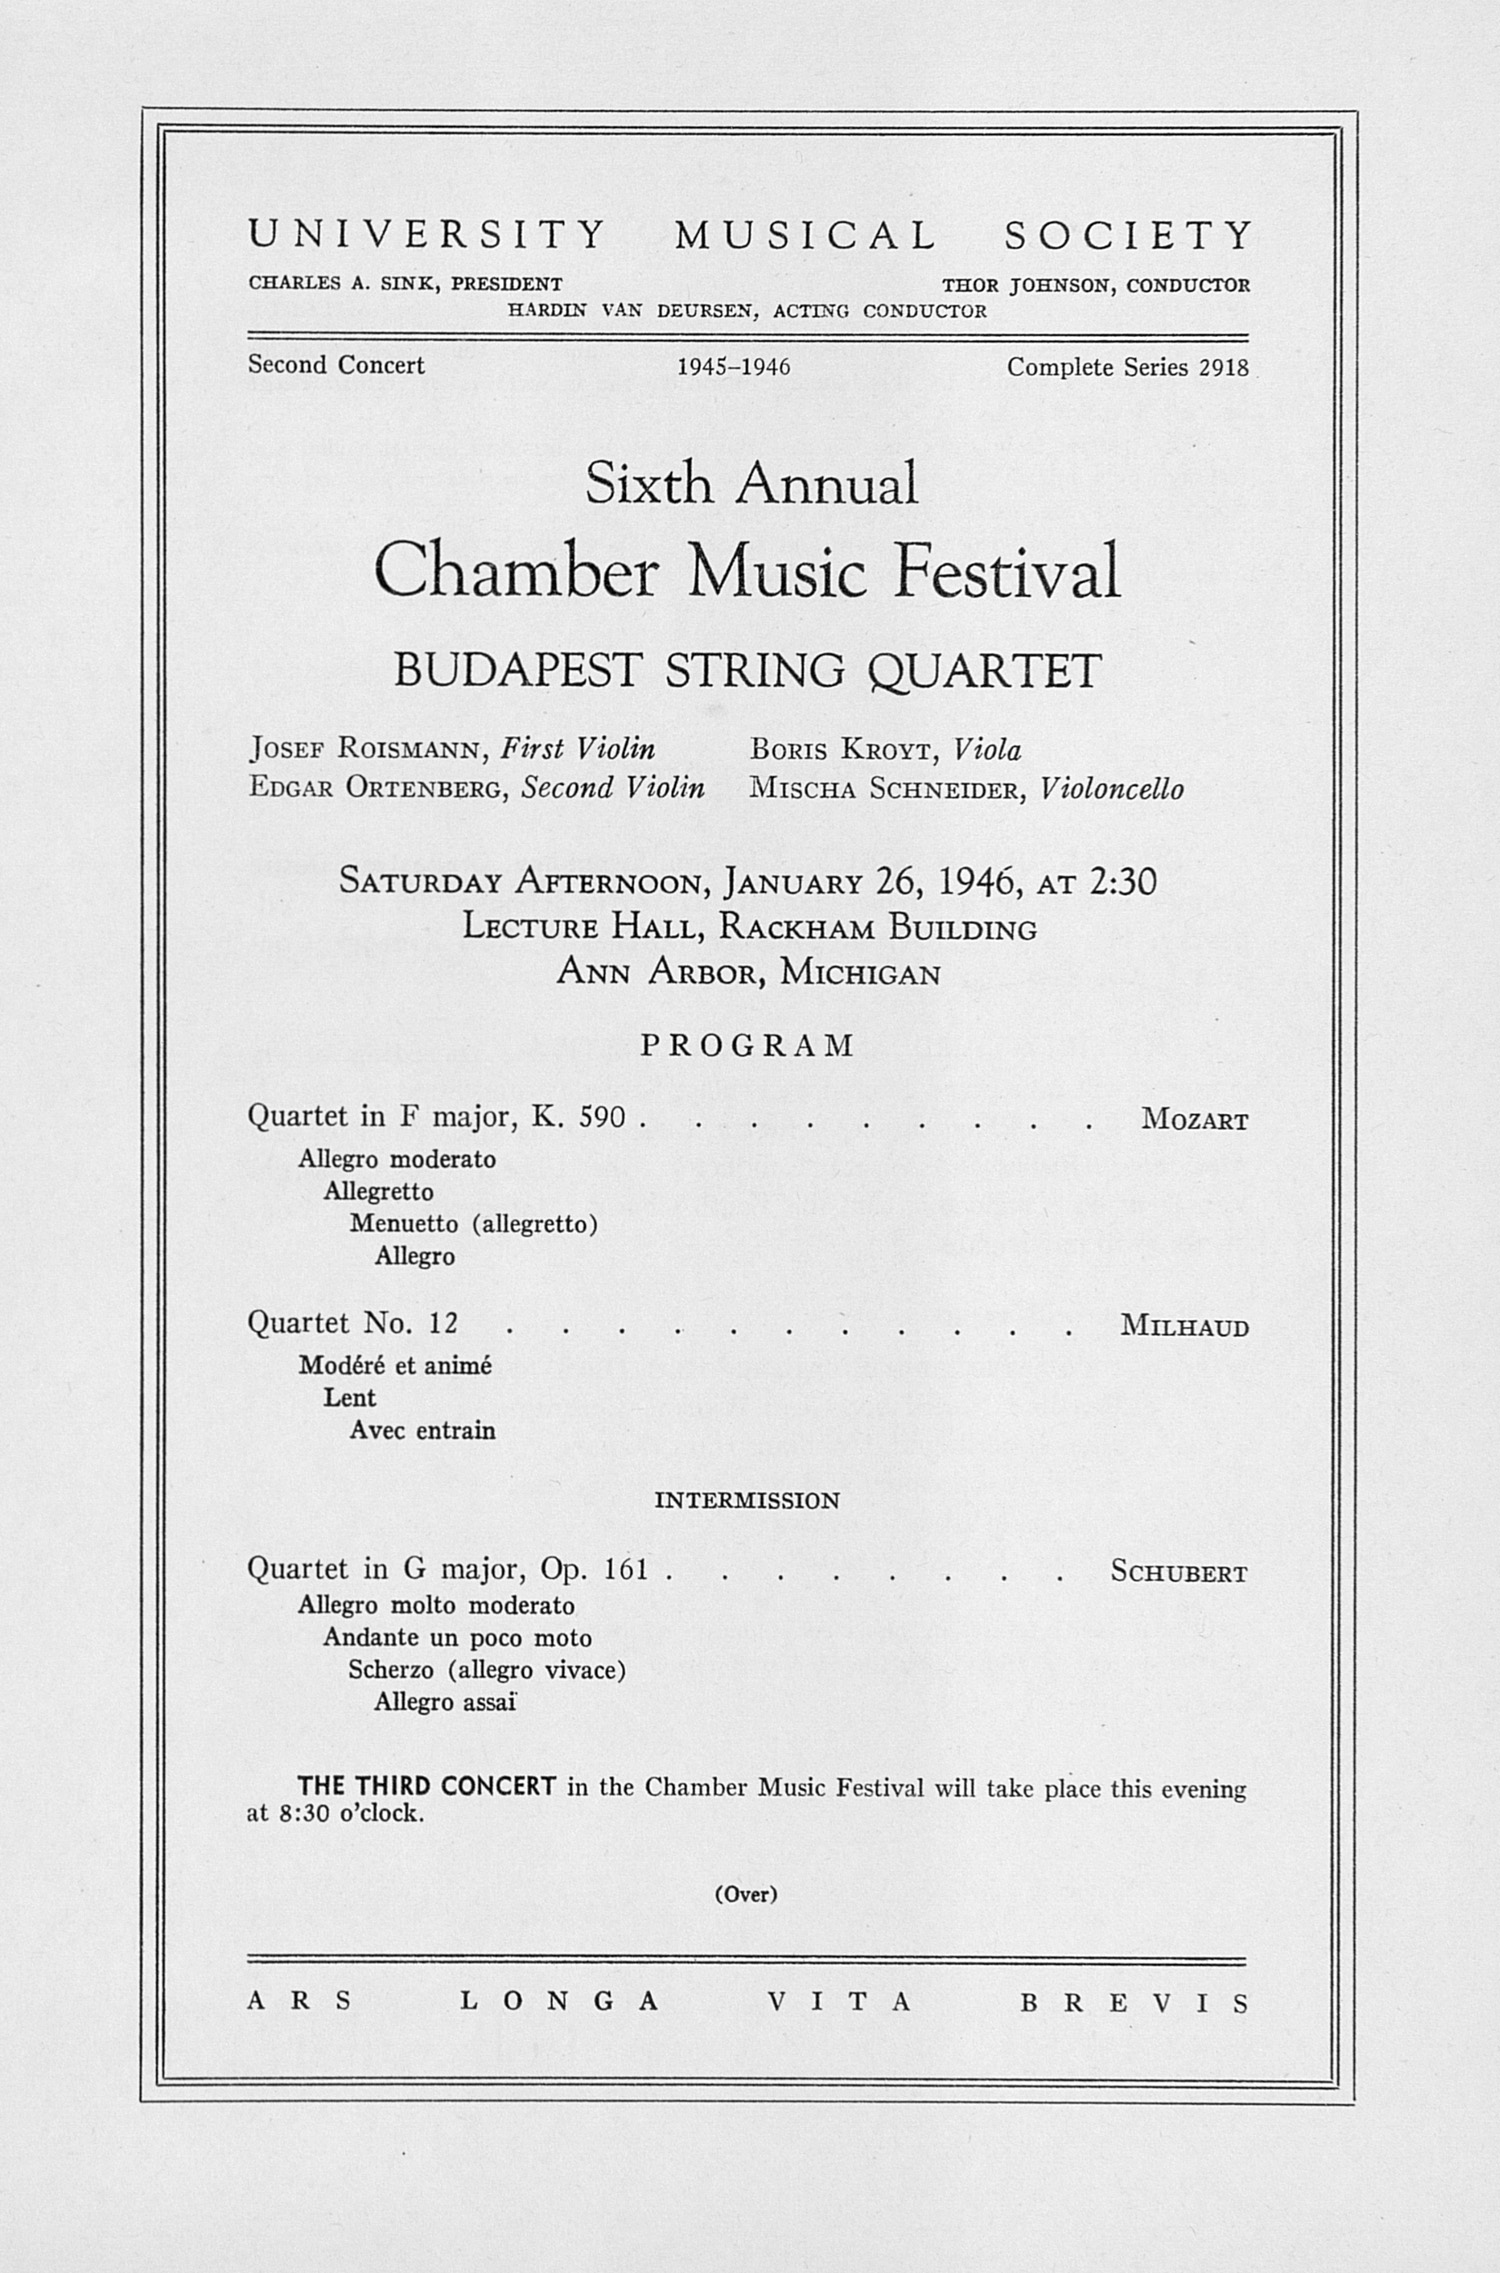 UMS Concert Program, January 26, 1946: Sixth Annual Chamber Music Festival -- Budapest String Quartet image